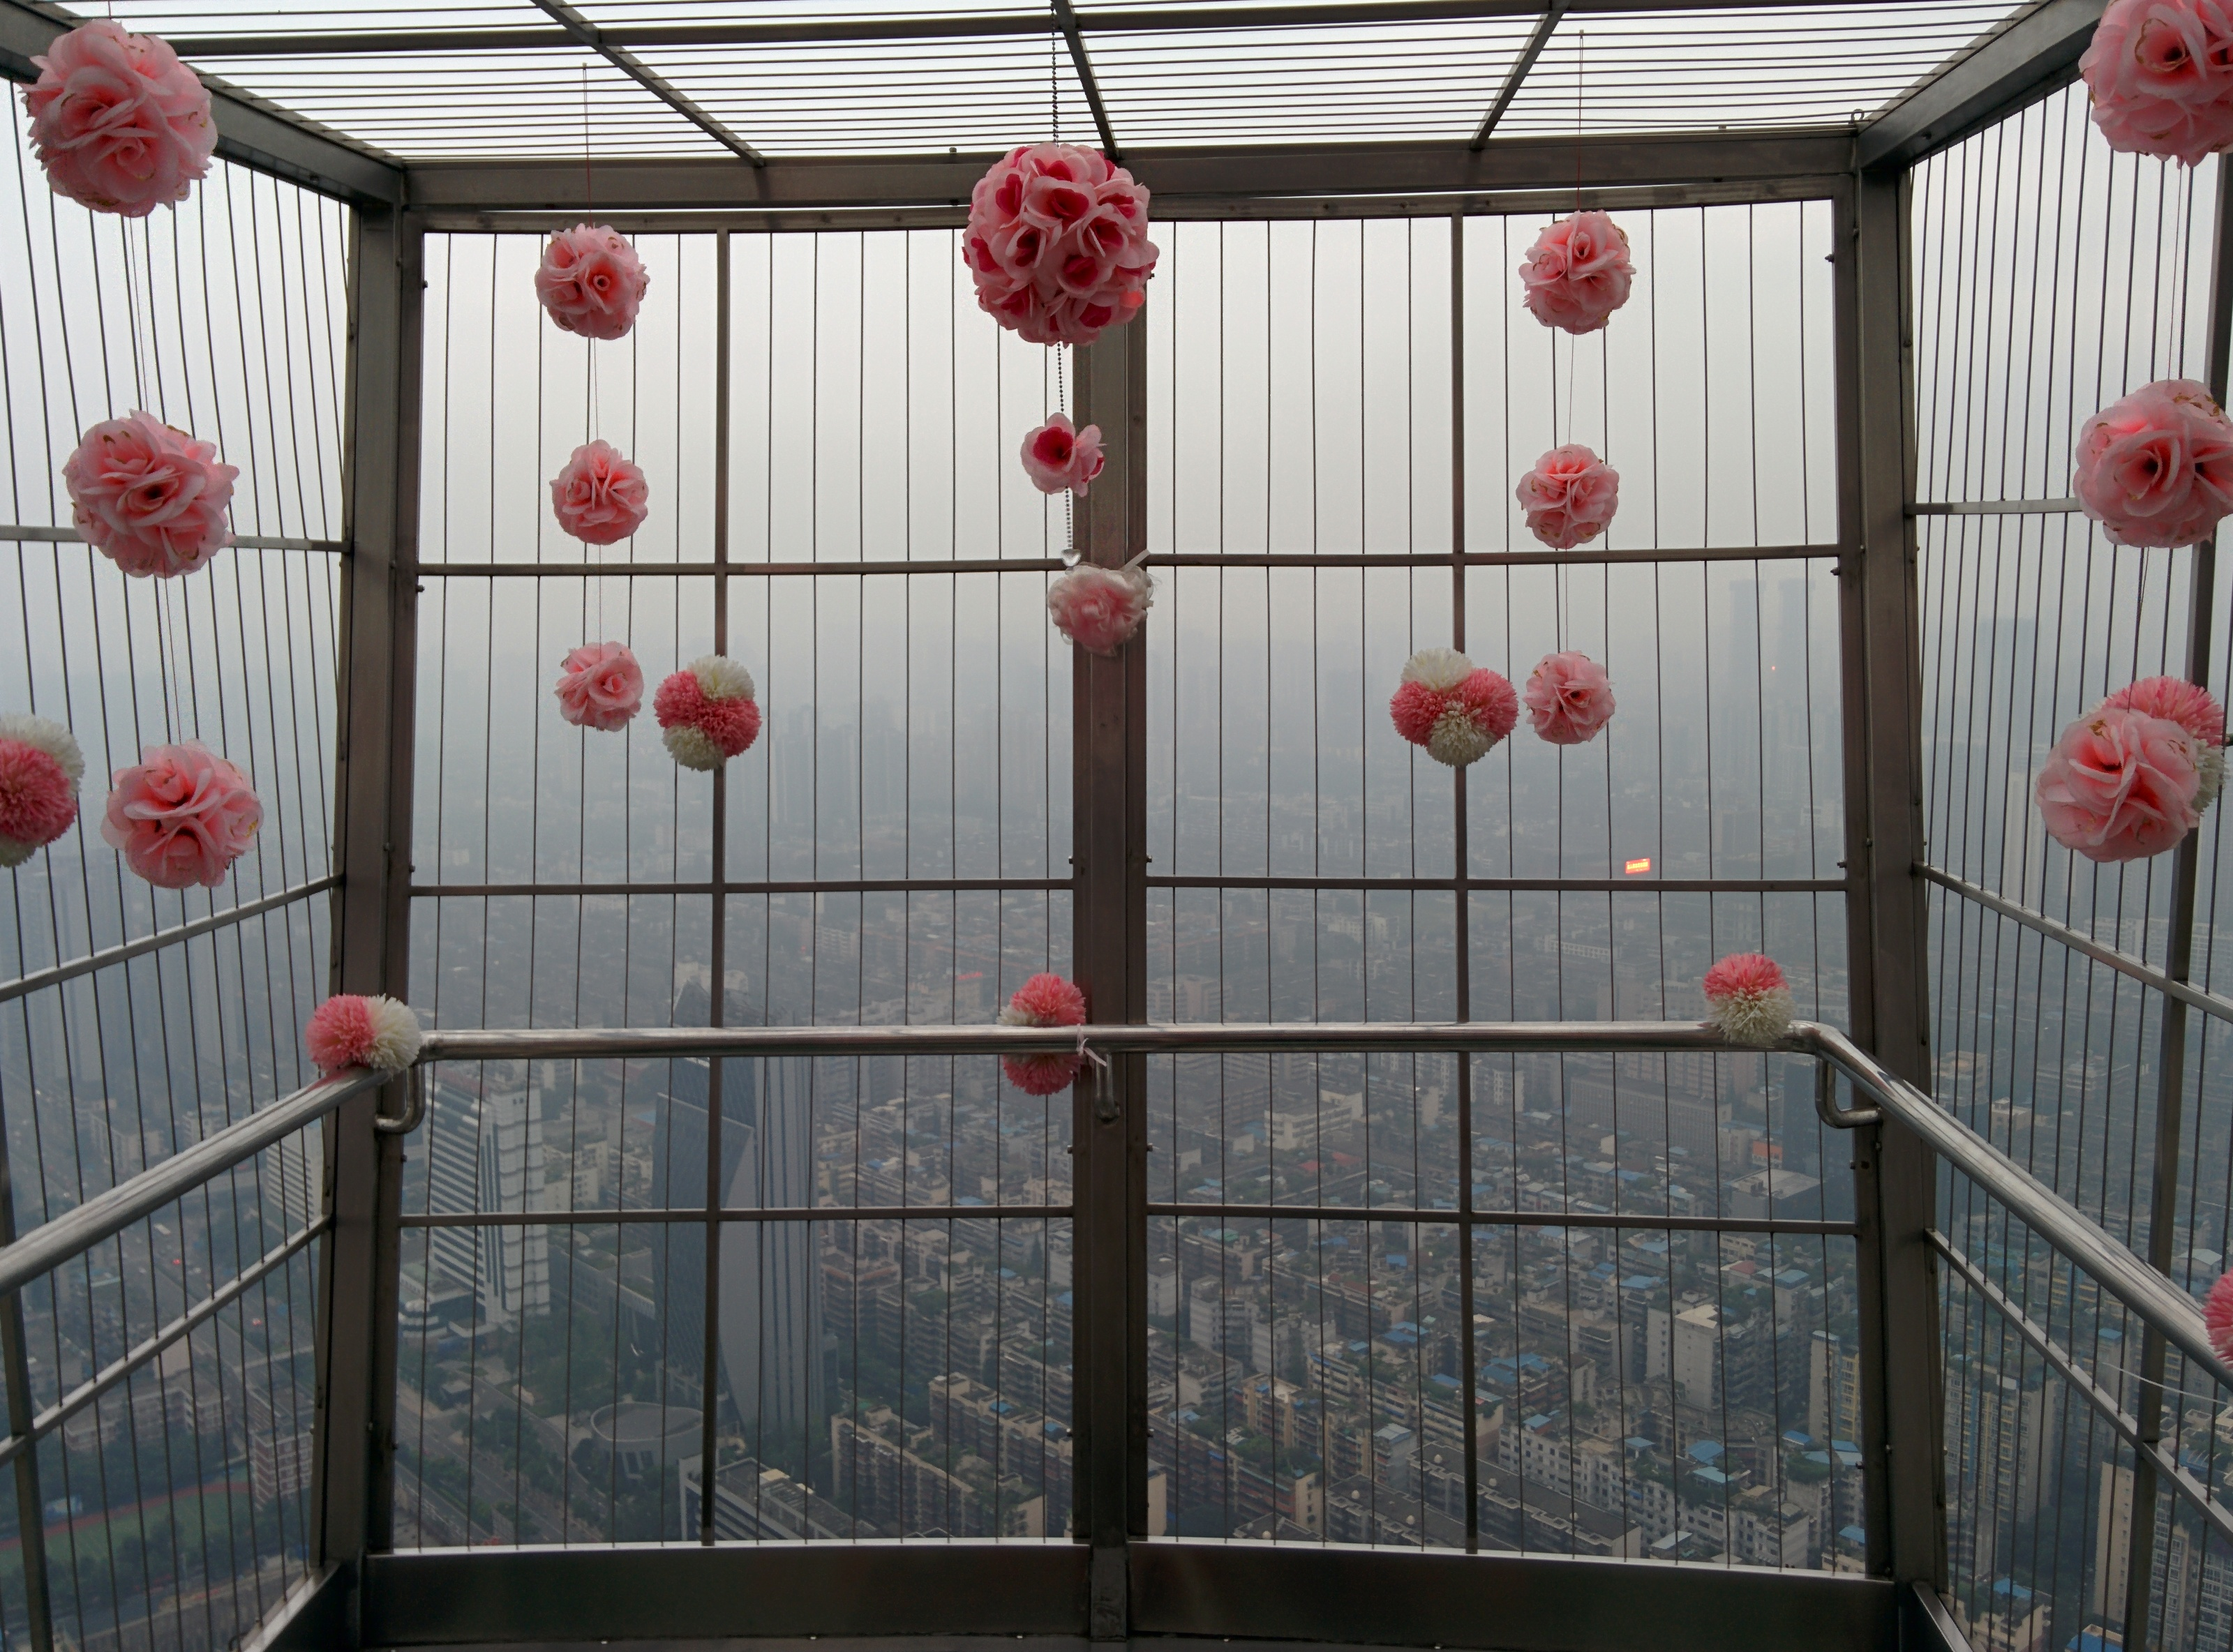 West Pearl Tower overhang with decorations.